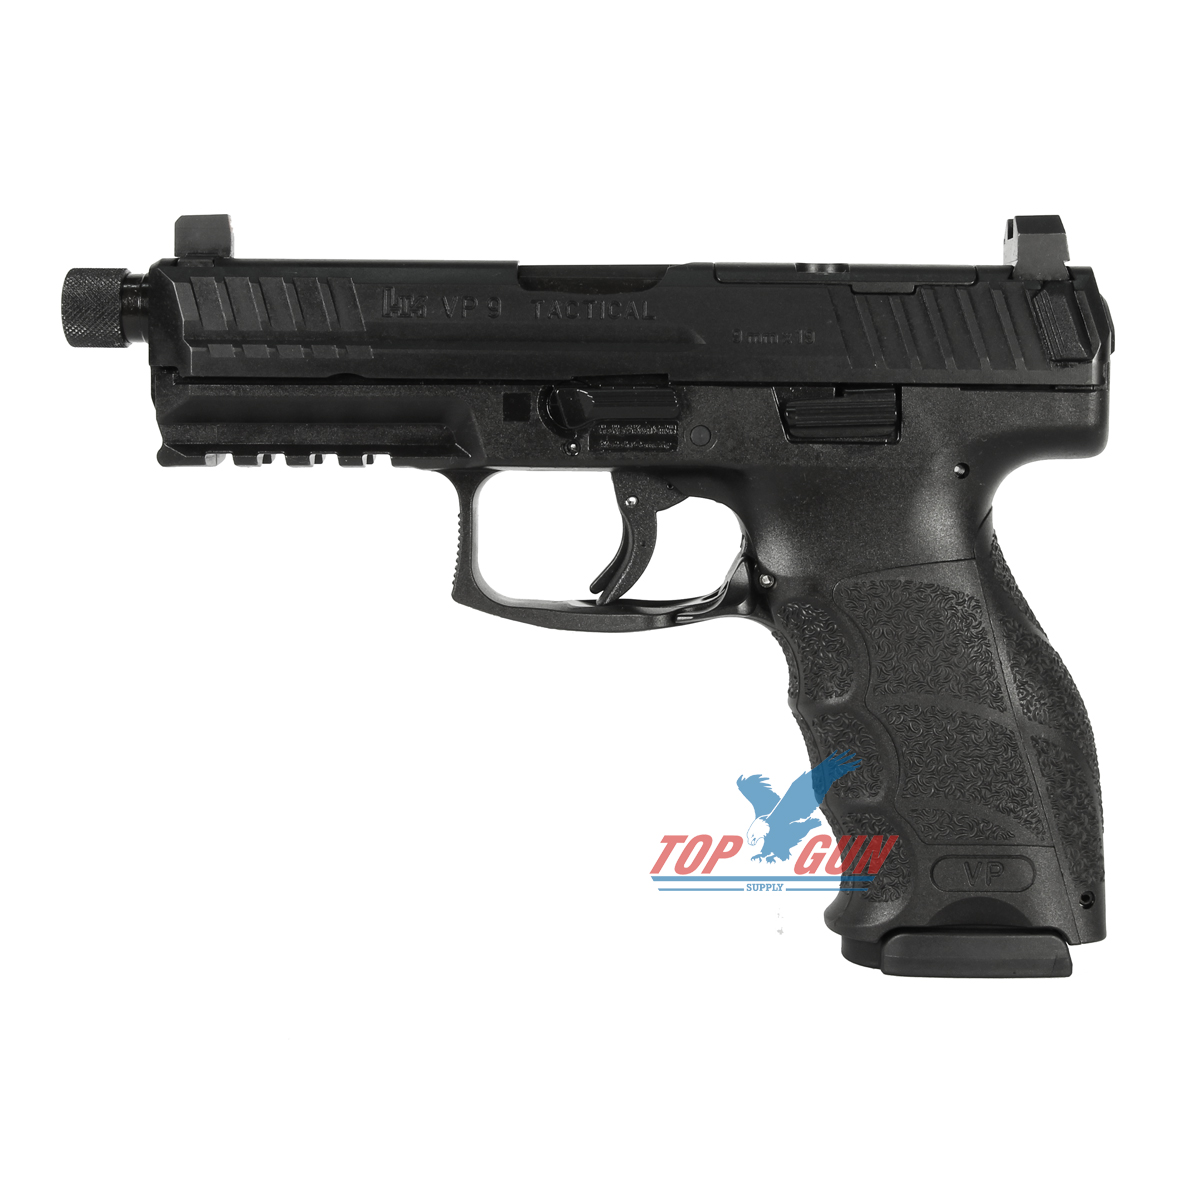 H&K VP9 Tactical LE 9mm Striker Fired, Optics Ready, Suppressor Sights, 3 17RD Mags